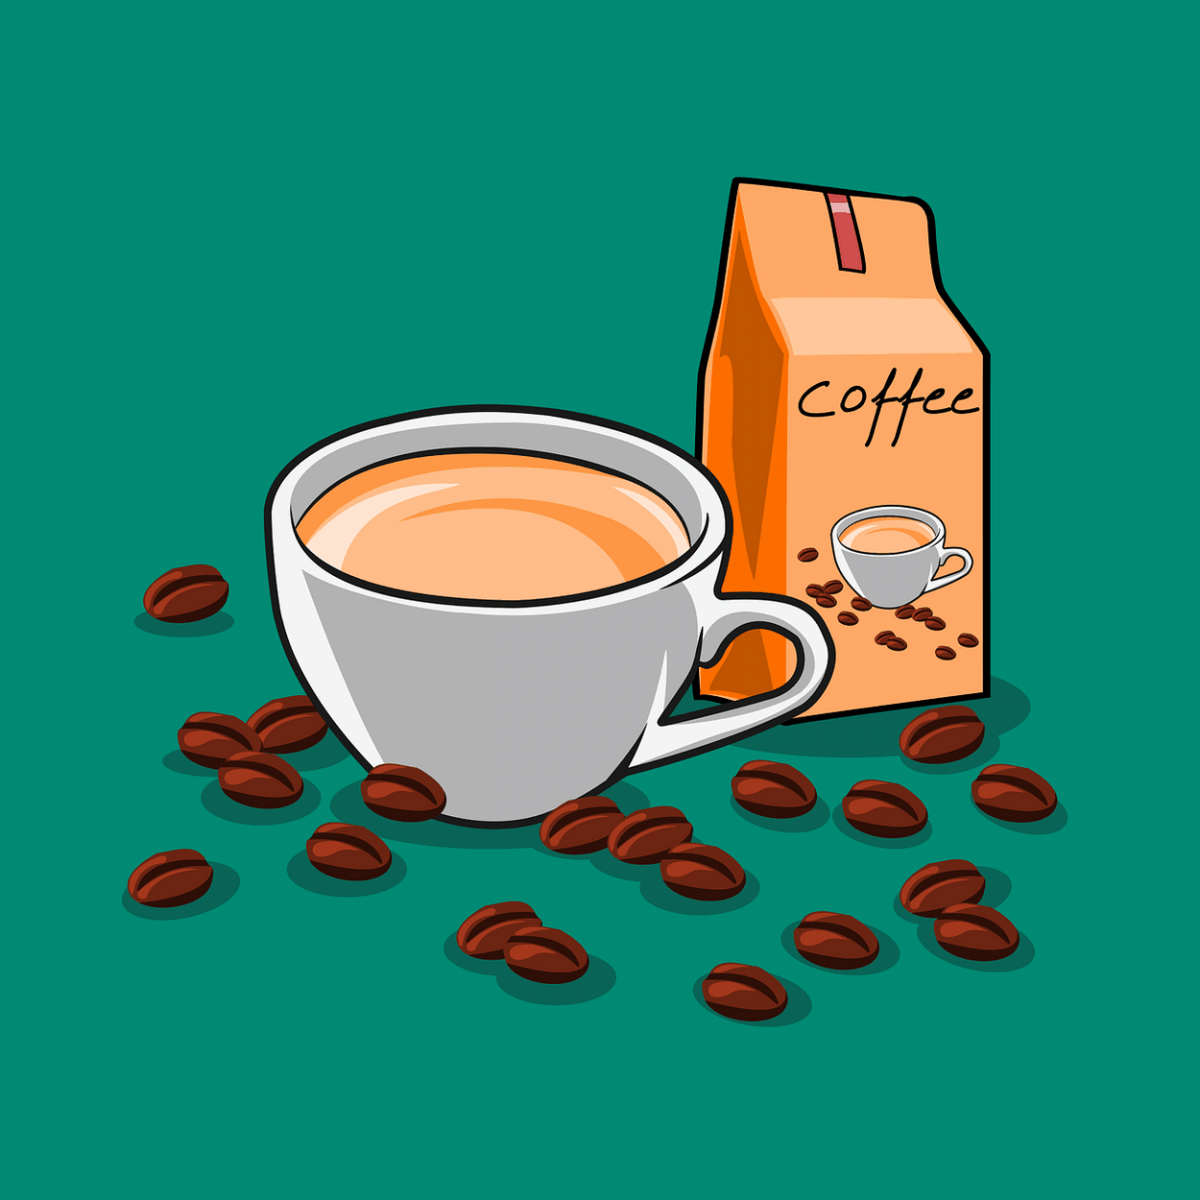 Coffee beans with a cup of coffee.